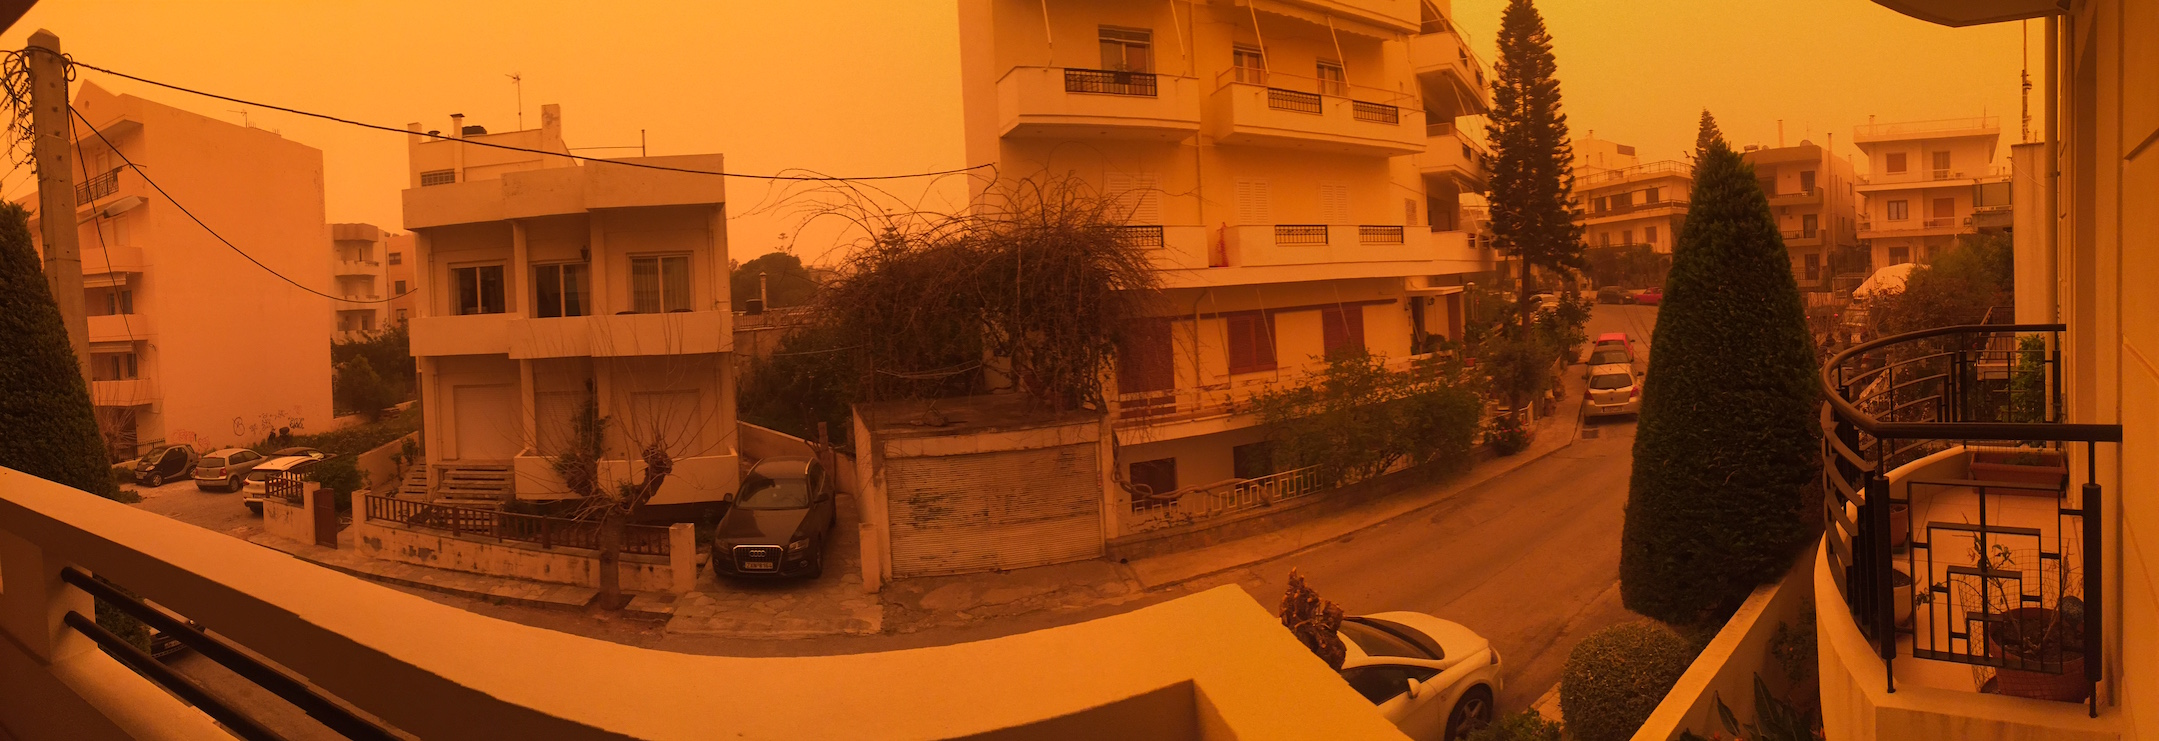 View from my balcony during the Sahara dust incident